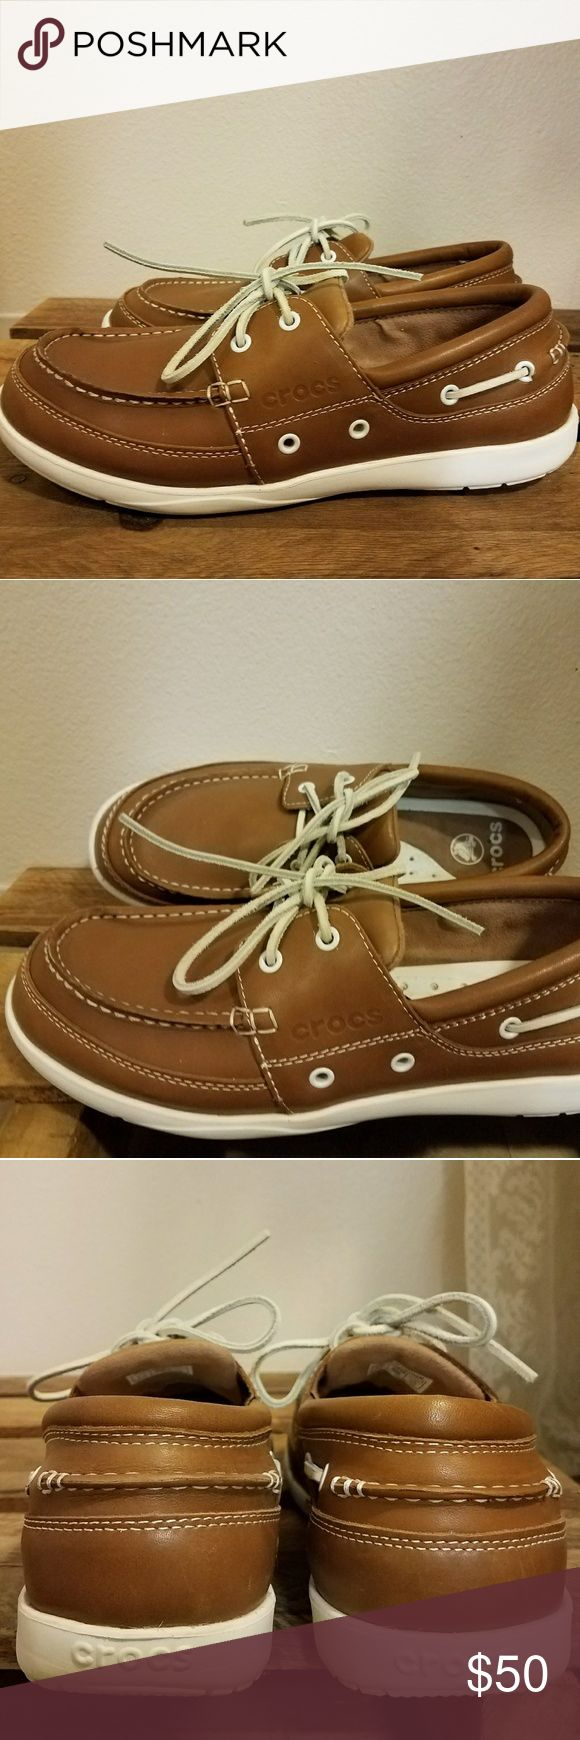 CROCS Boat Shoes Harborline Hazelnut/ Brown Boat Shoes. Upper leather, discontinued. They are in excellent condition, I only used them a couple of times. They have a minor flaw in one of the eyelets, I provided a photo above. CROCS Shoes Boat Shoes